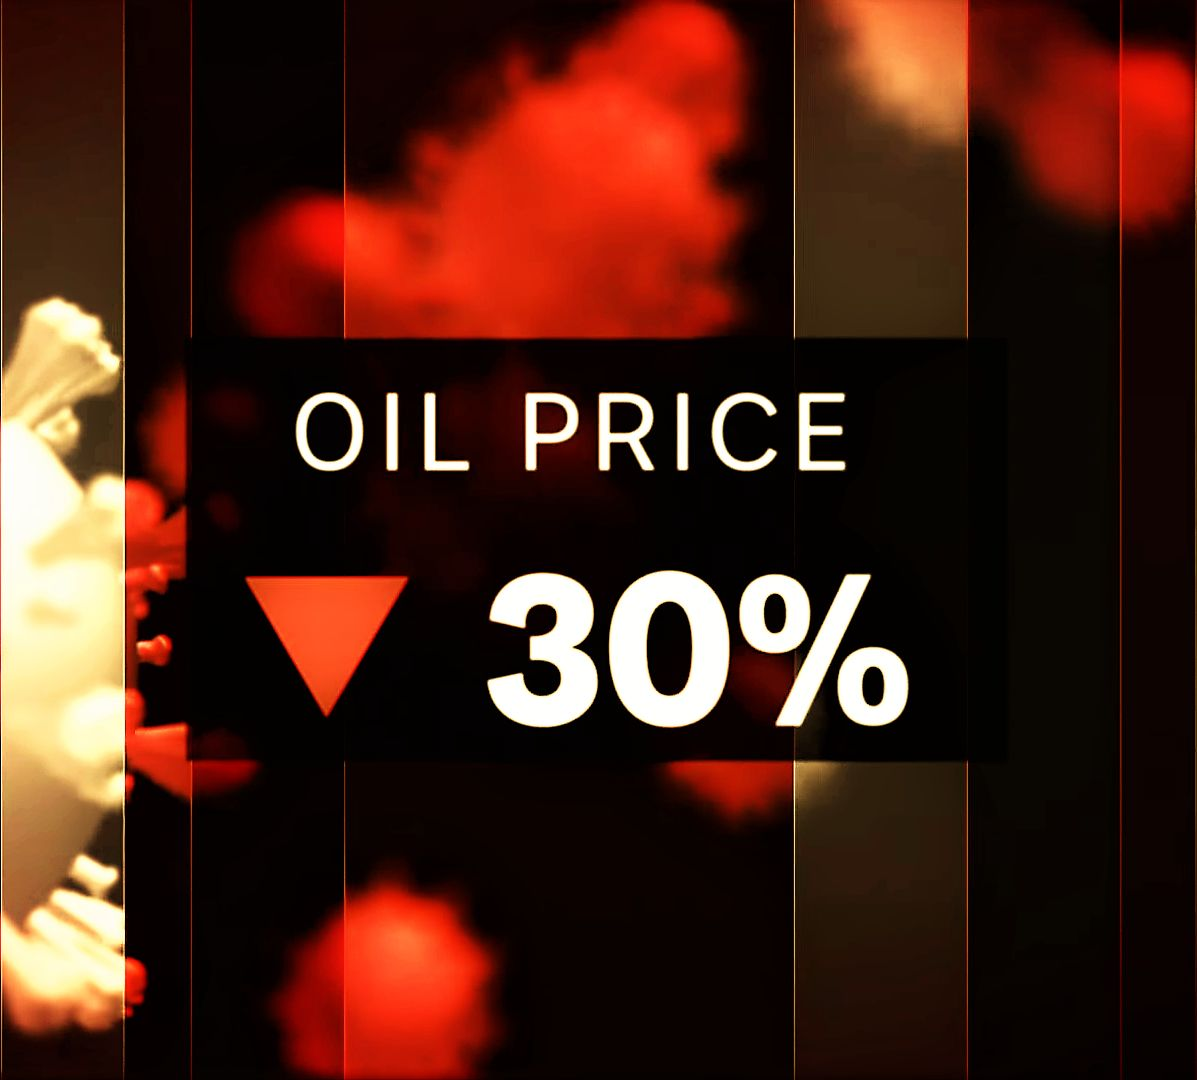 Economic impact of the coronavirus and the oil price war. Image showing 30 percent drop in the price of oil.